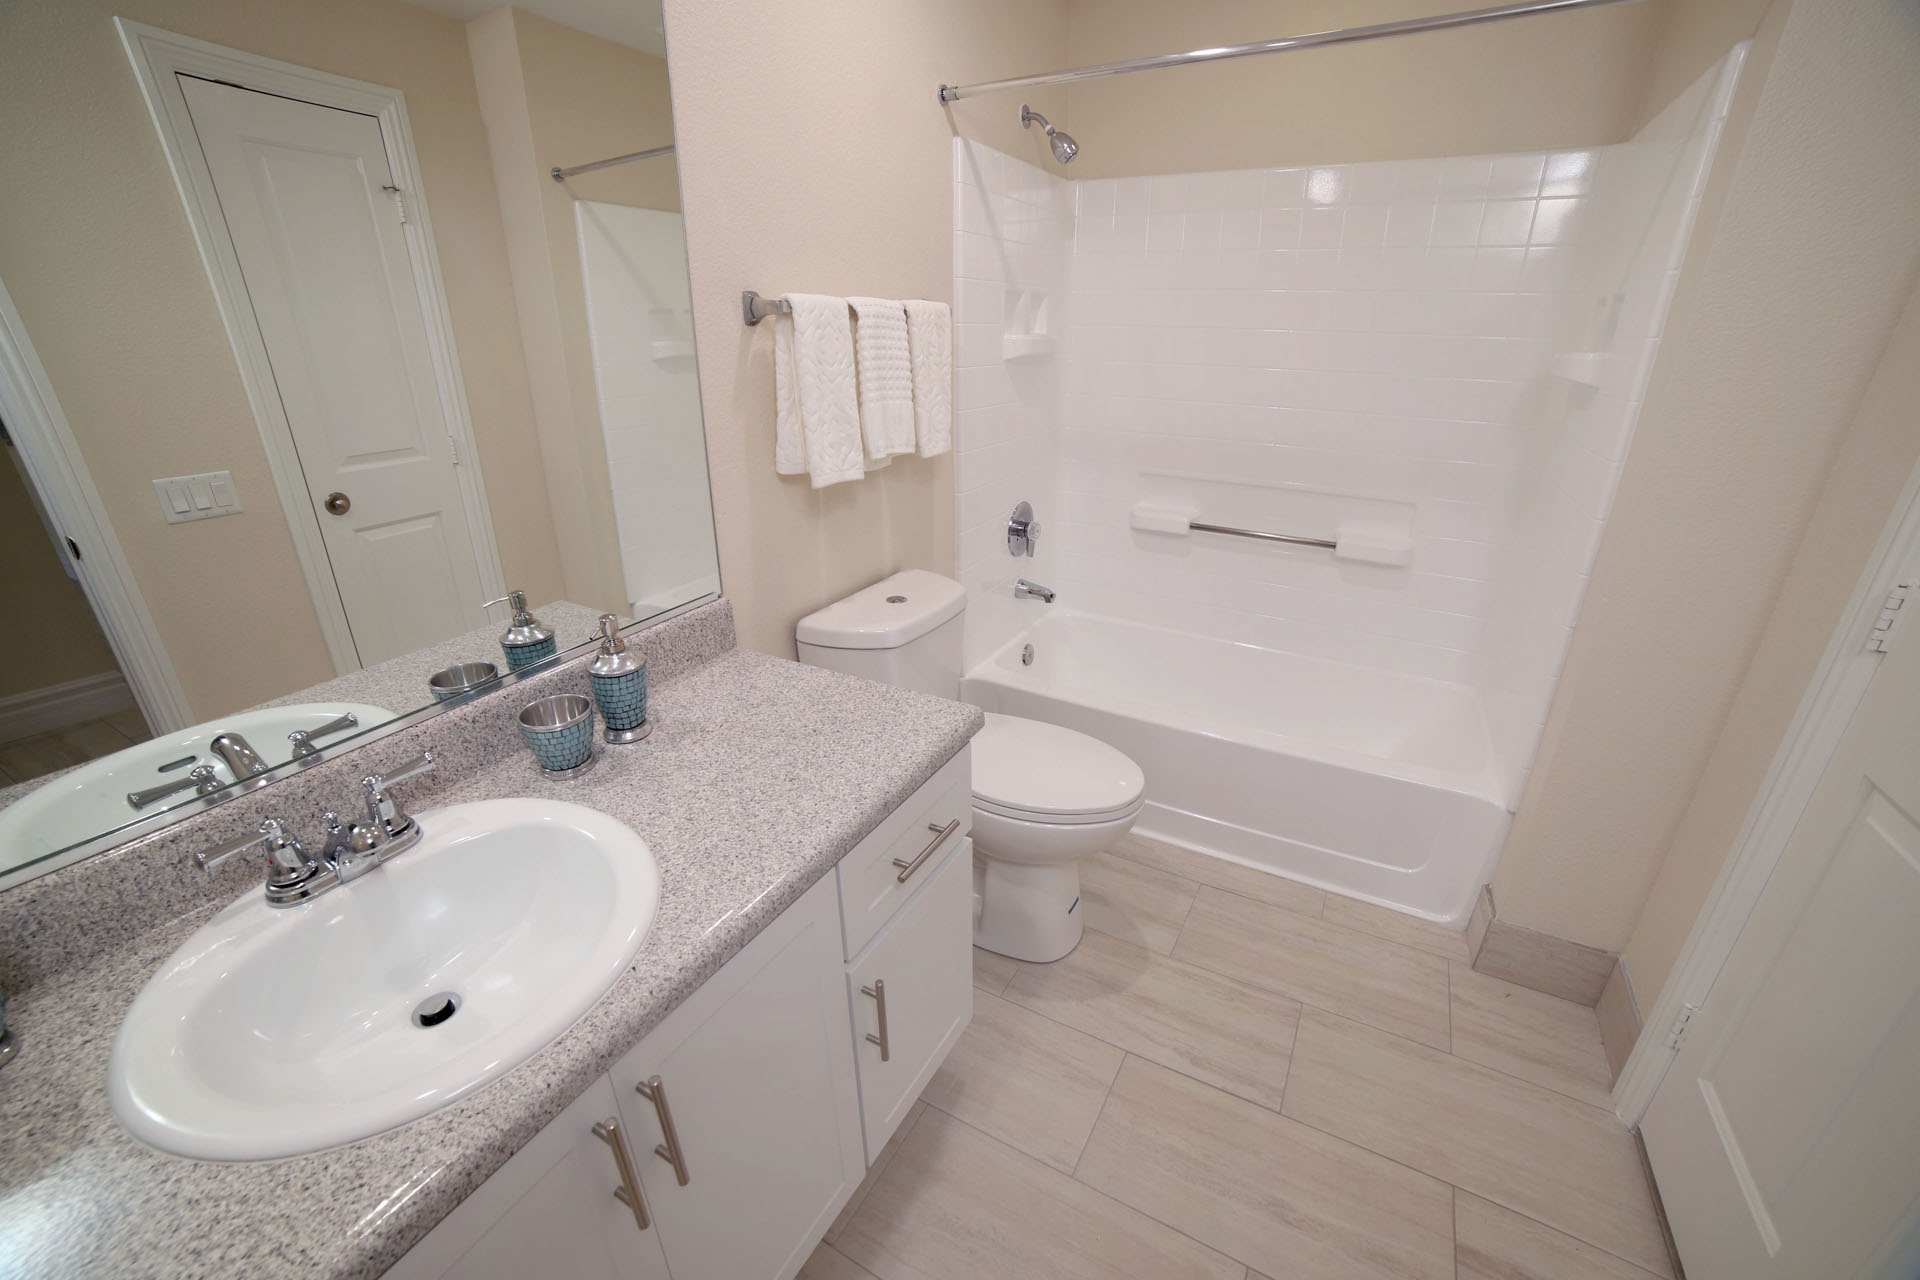 Aliso Viejo Apartments-Aventine Apartments Bathroom with Gorgeous Lighting, a Large Shower and Tub Area, and Spacious Vanity Area